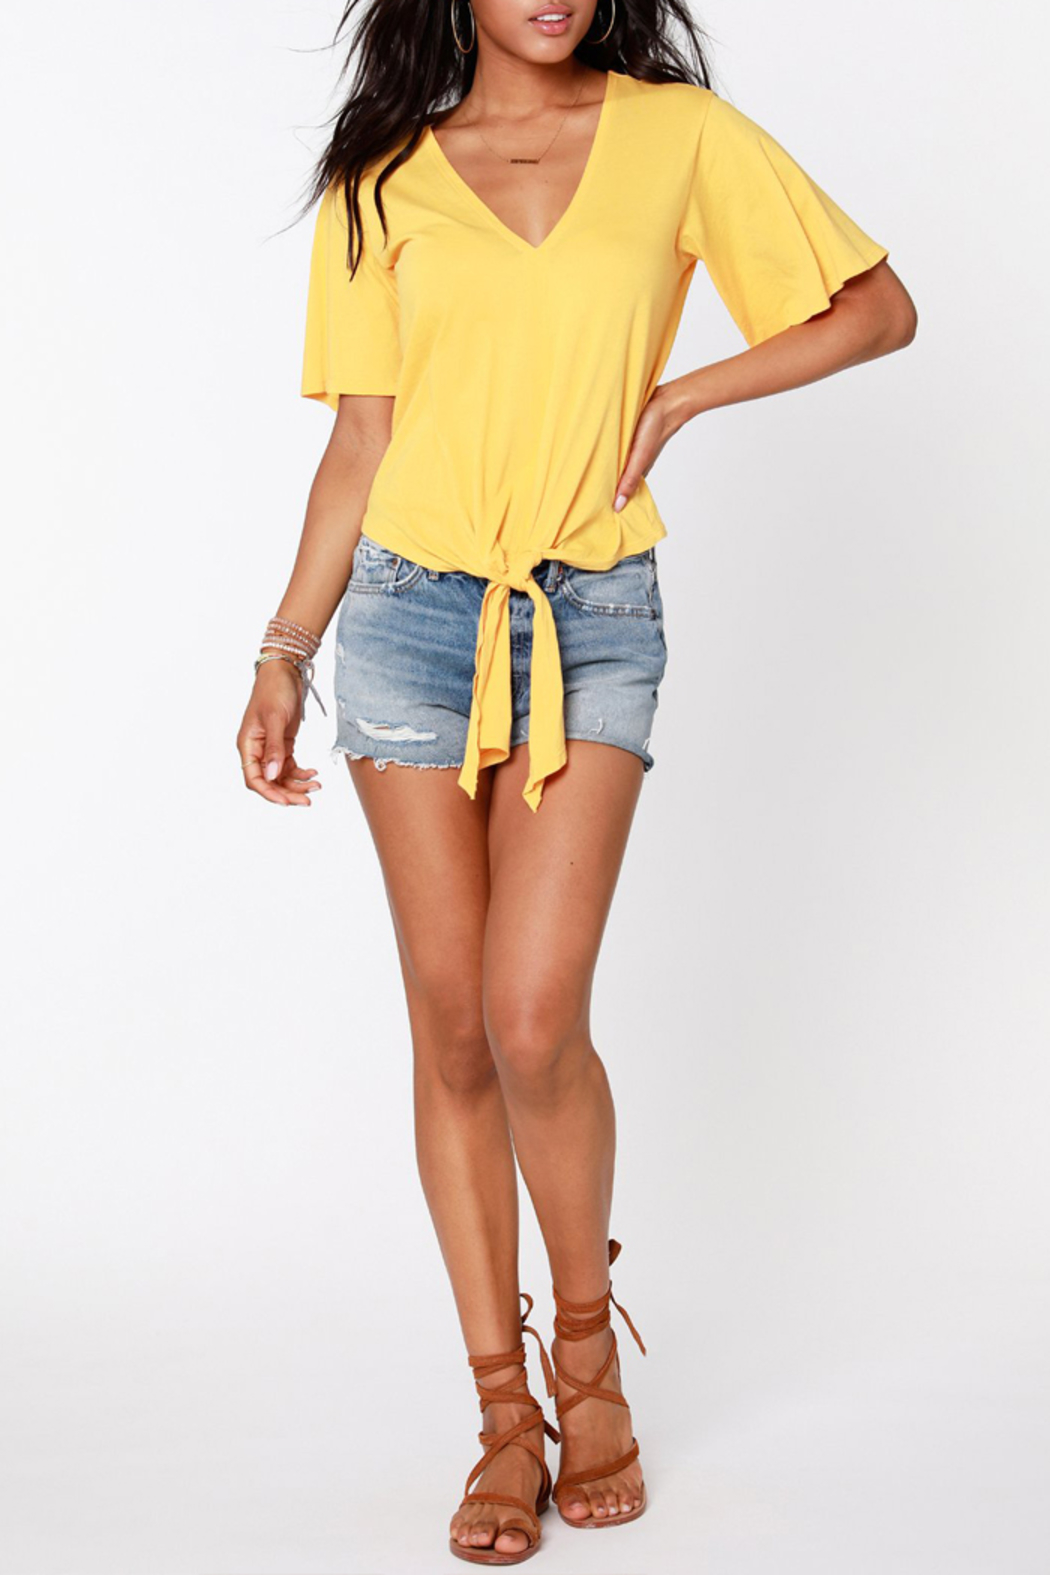 Bobi BOBI V NECK TIE FRONT TOP - Back Cropped Image